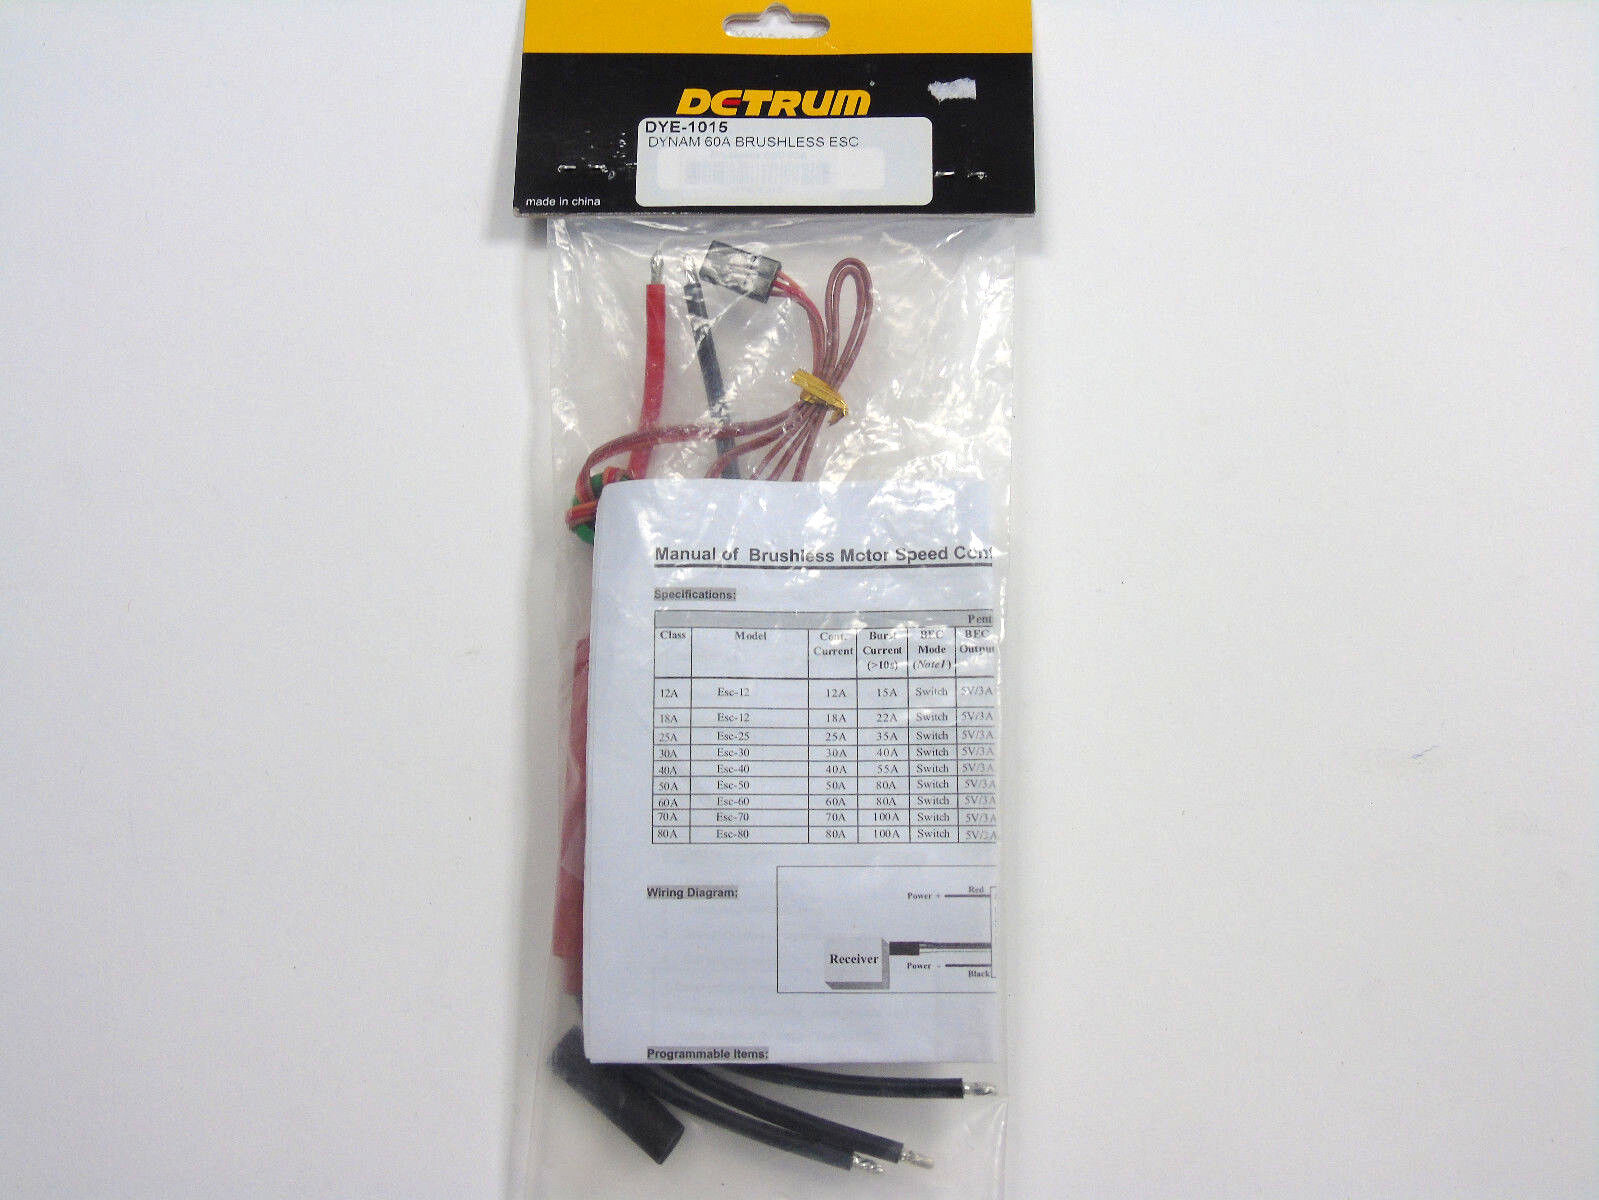 DYE-1015 Dynam Dctrum 60A senza Spazzola Esc 5-12 Nicd 2-6 Lipo Nuovo in Scatola